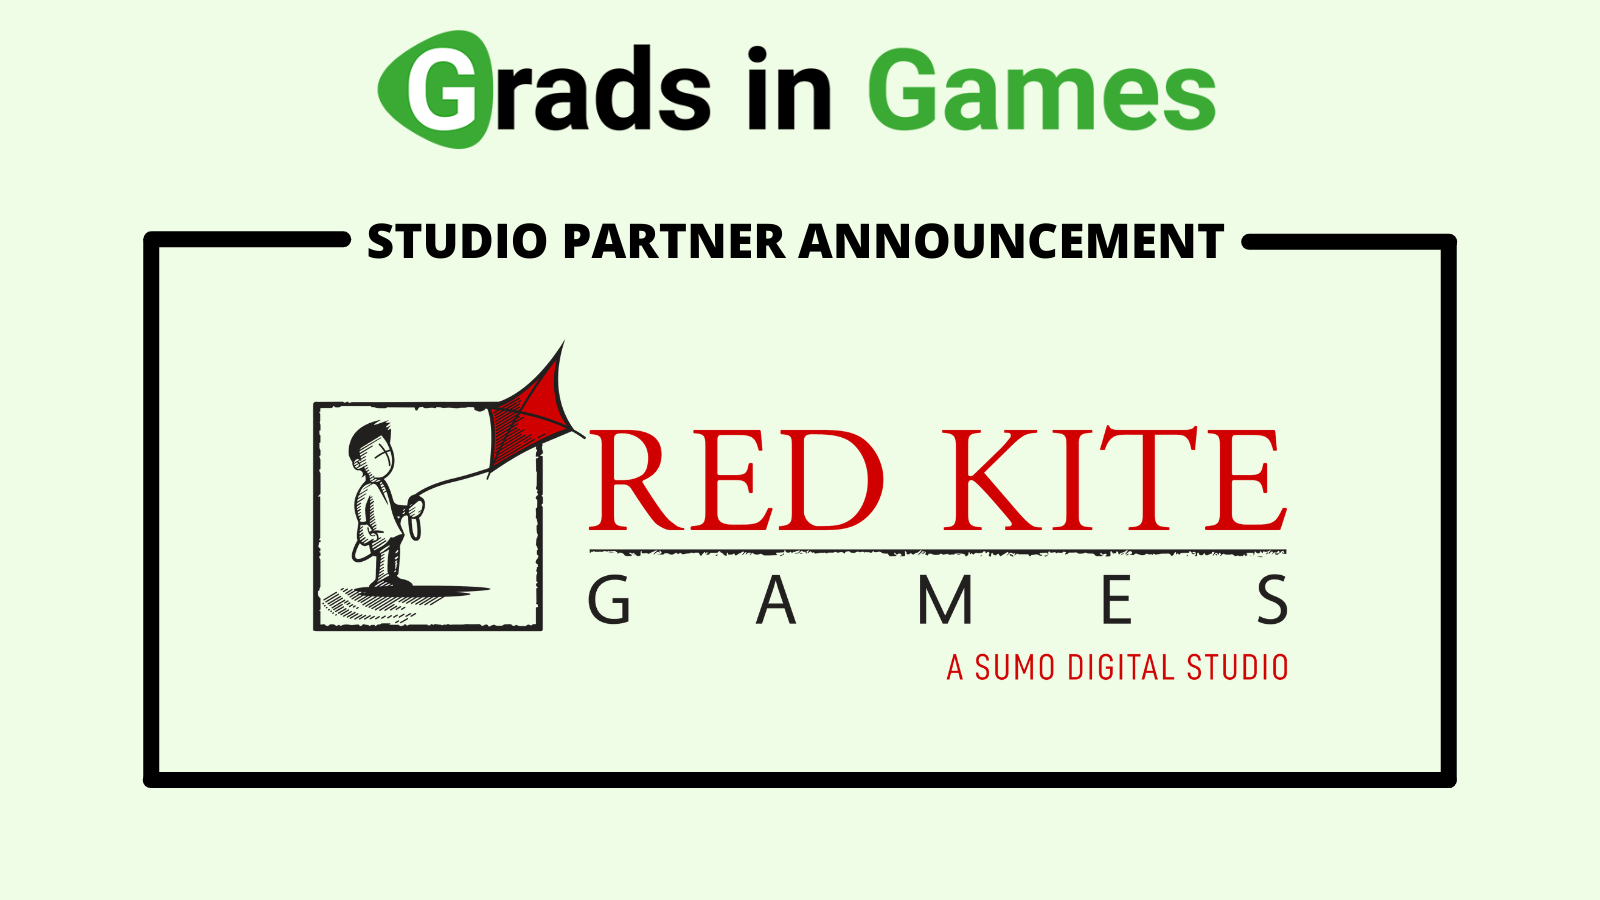 Red Kite Games Returns as a Grads in Games Partner Studio for 2021/22